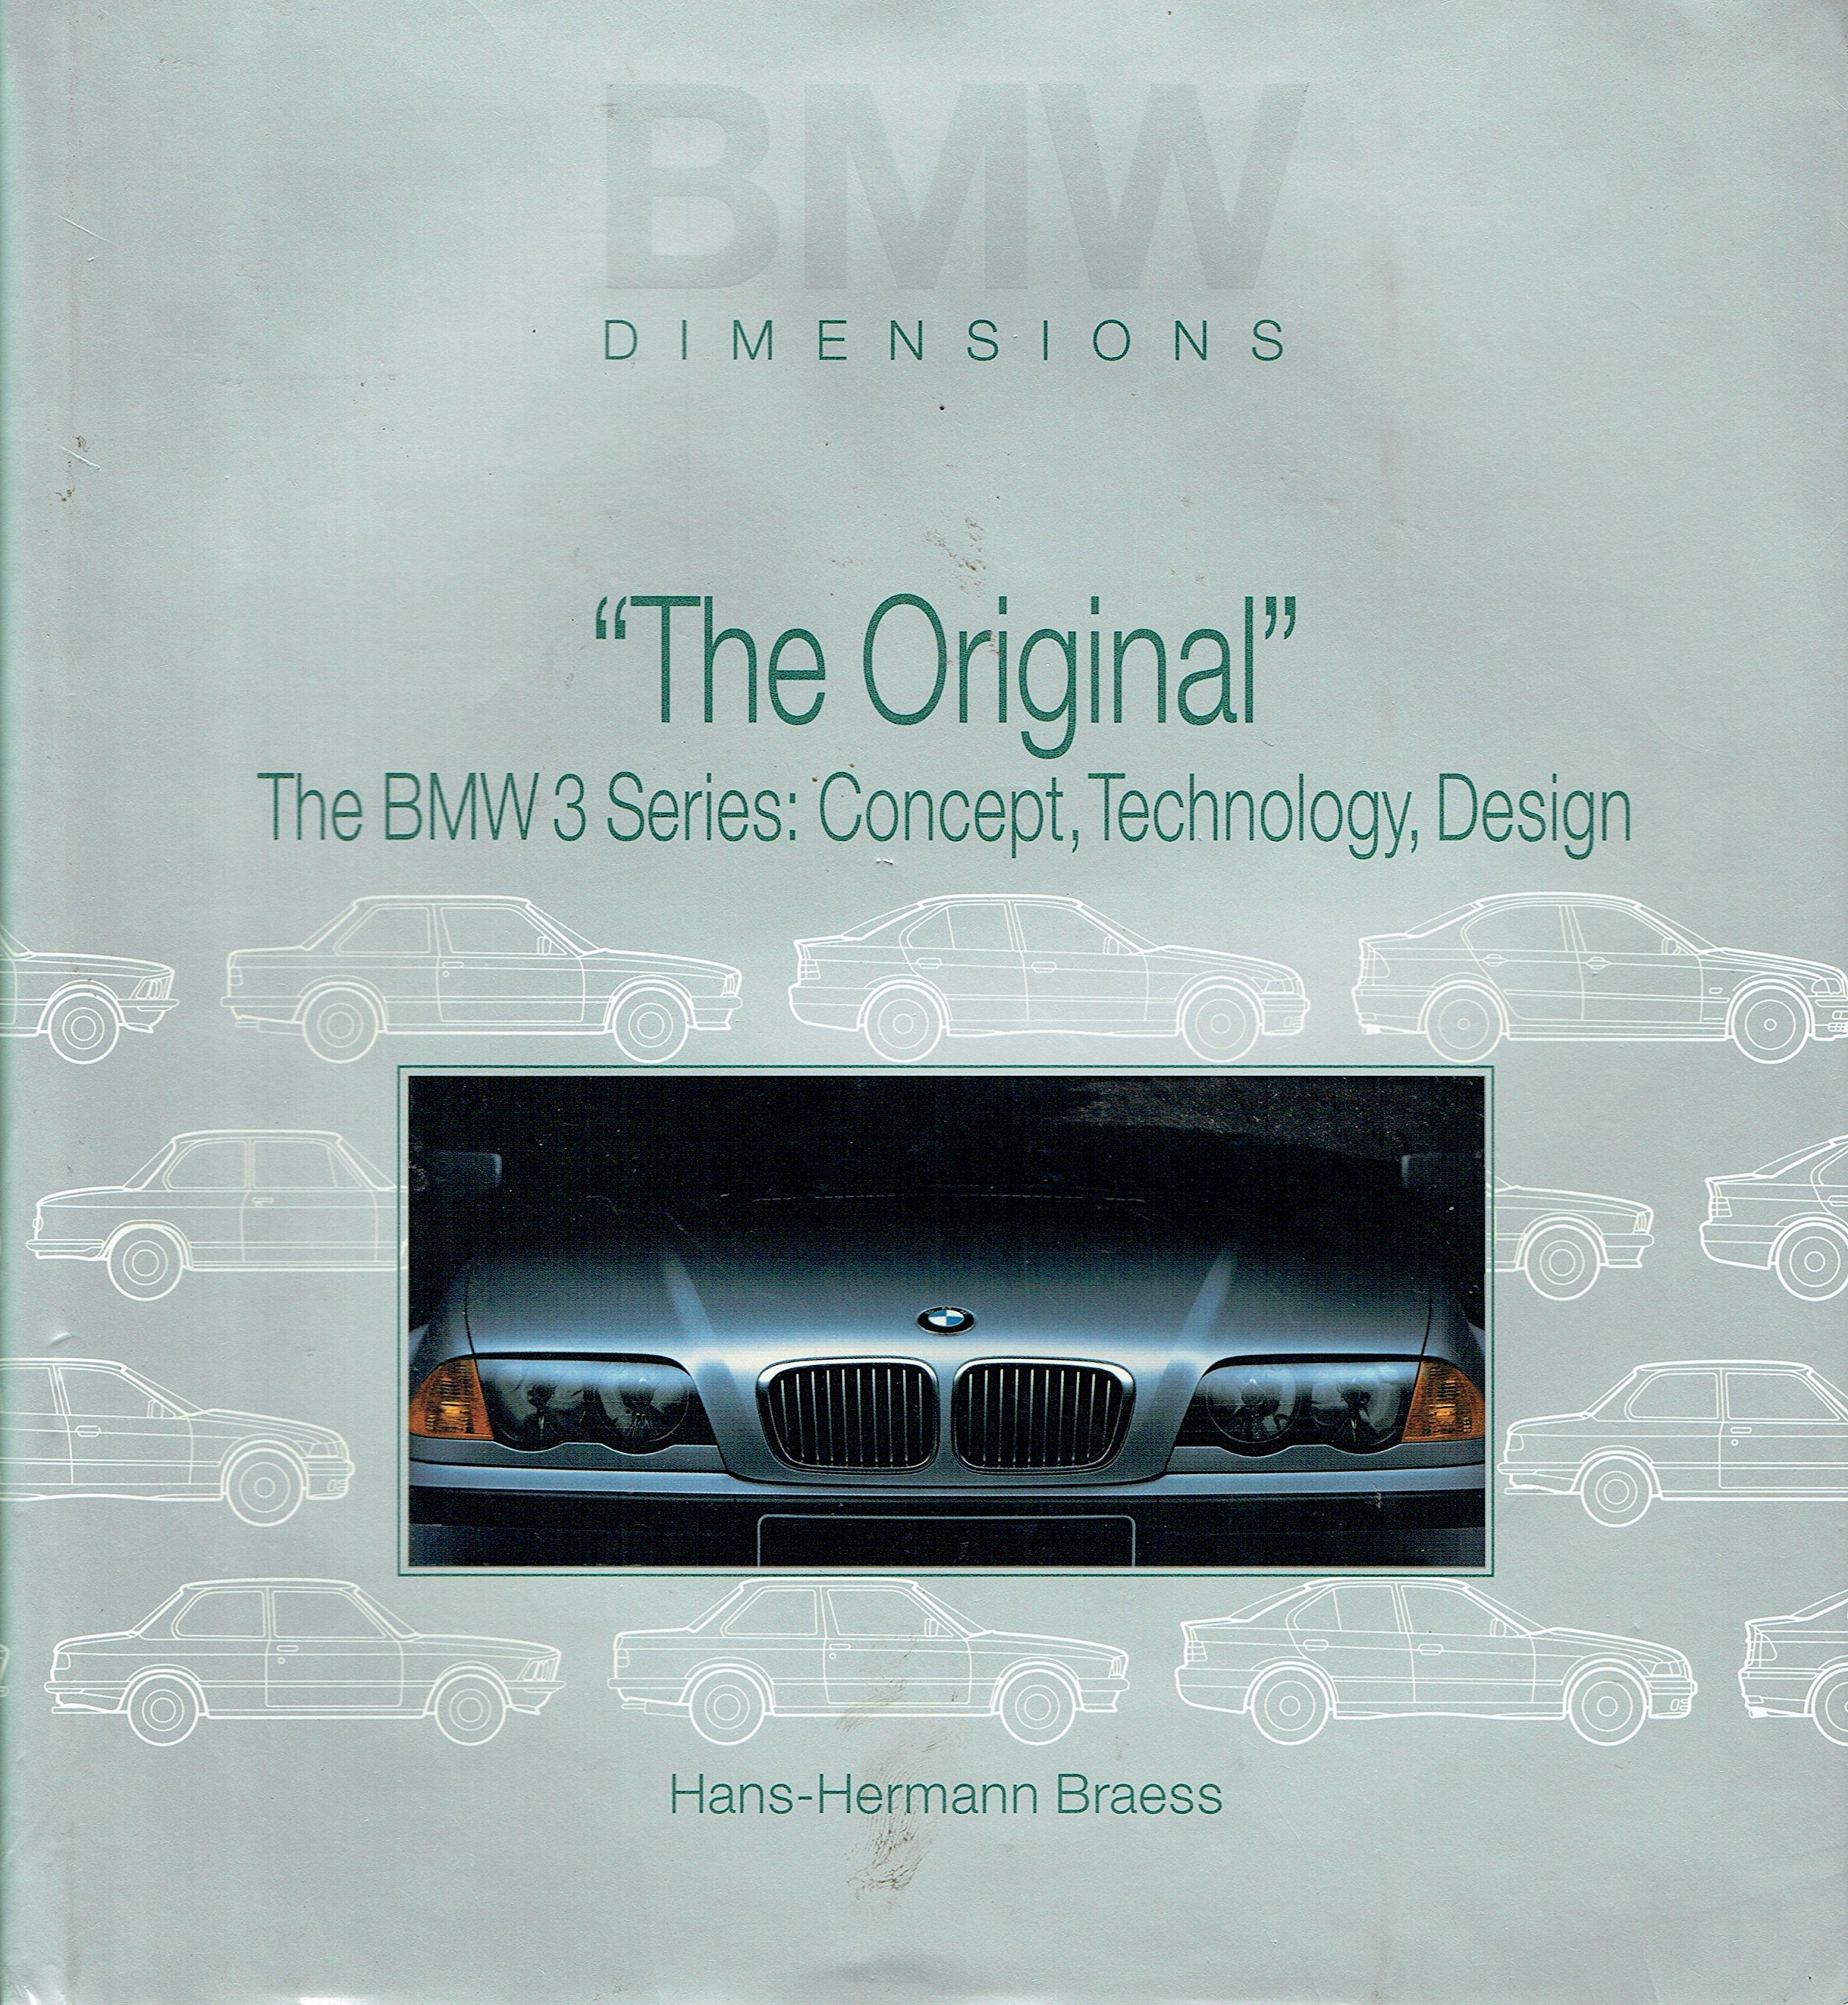 Bmw Dimensions The Original The Bmw 3 Series Concept Technology